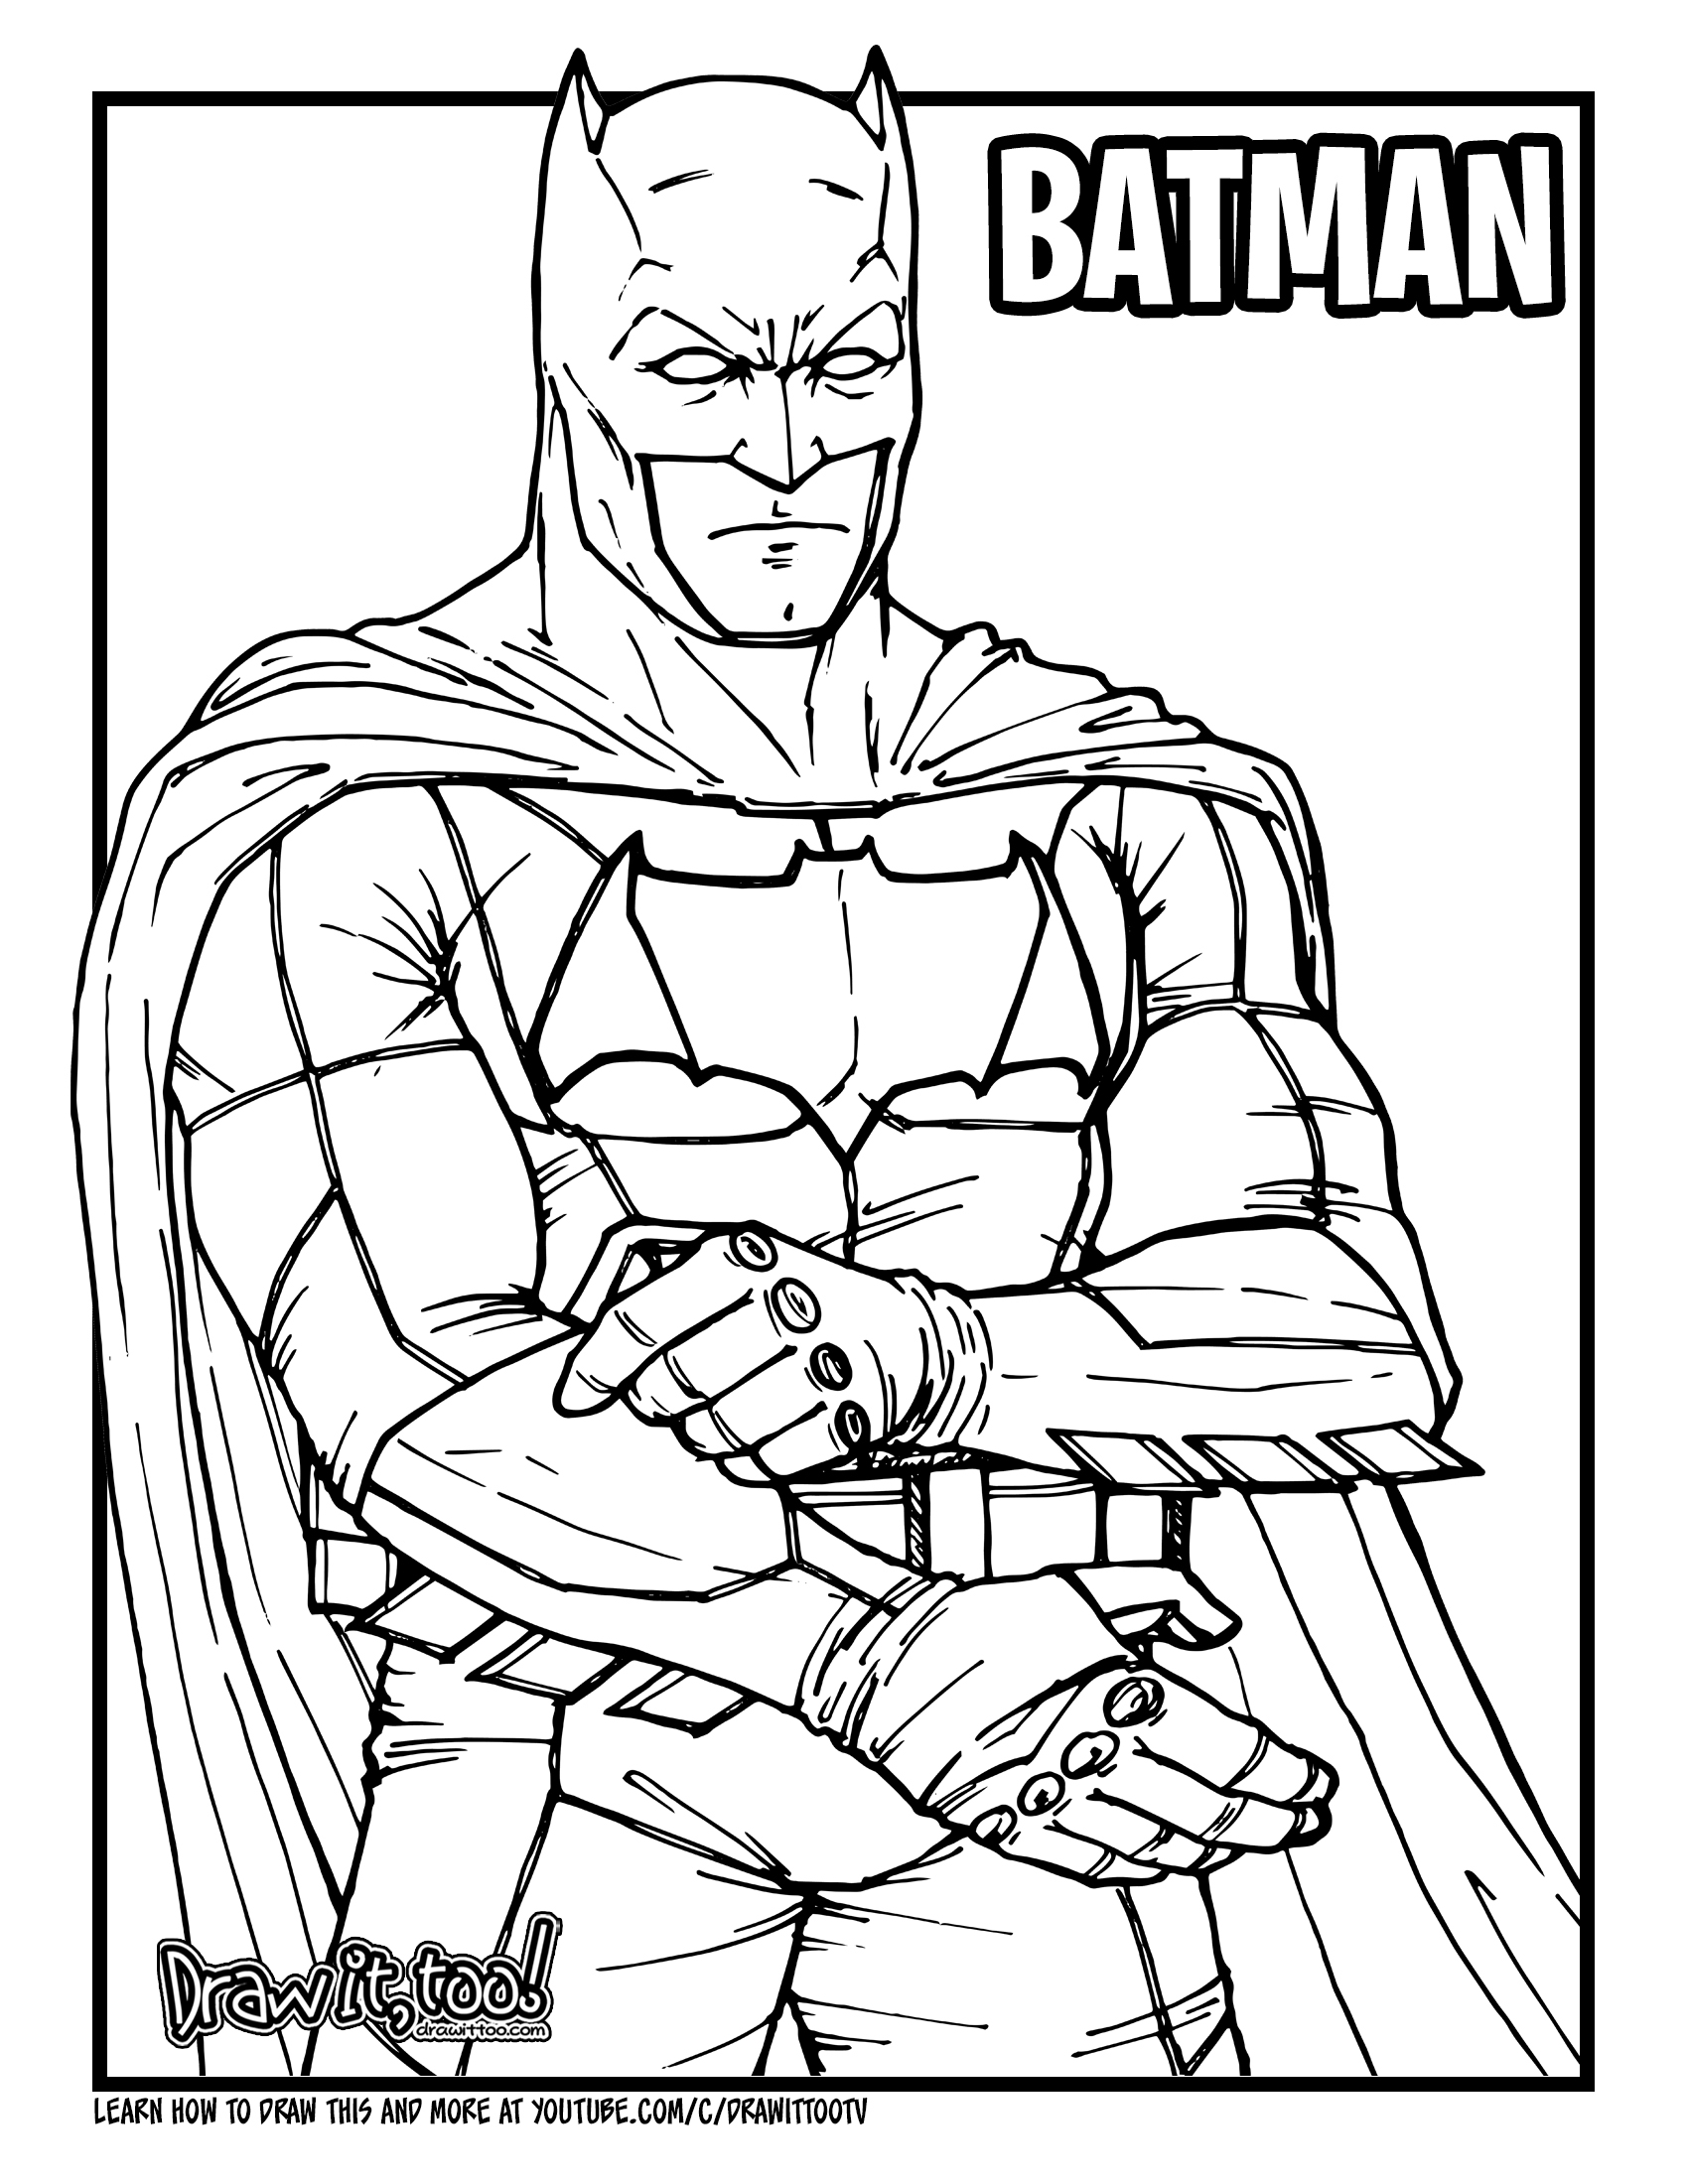 From Batman V Superman Armored Batman Coloring Pages ...